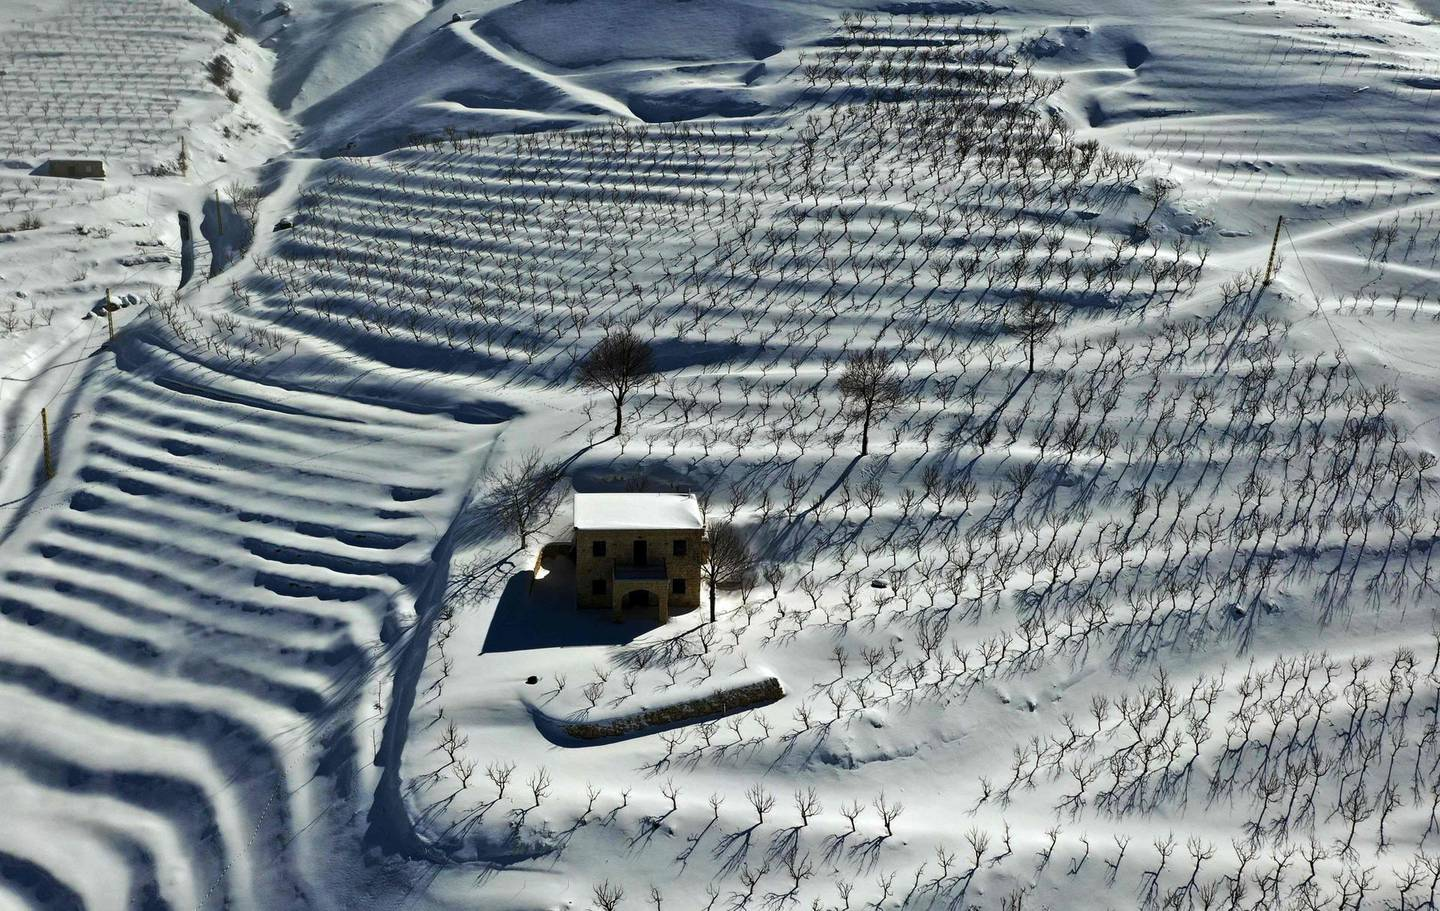 TOPSHOT - An aerial picture shows a blanket of snow covering agricultural fields in the Tannourine area in the Lebanese mountains, on January 22, 2021. / AFP / JOSEPH EID